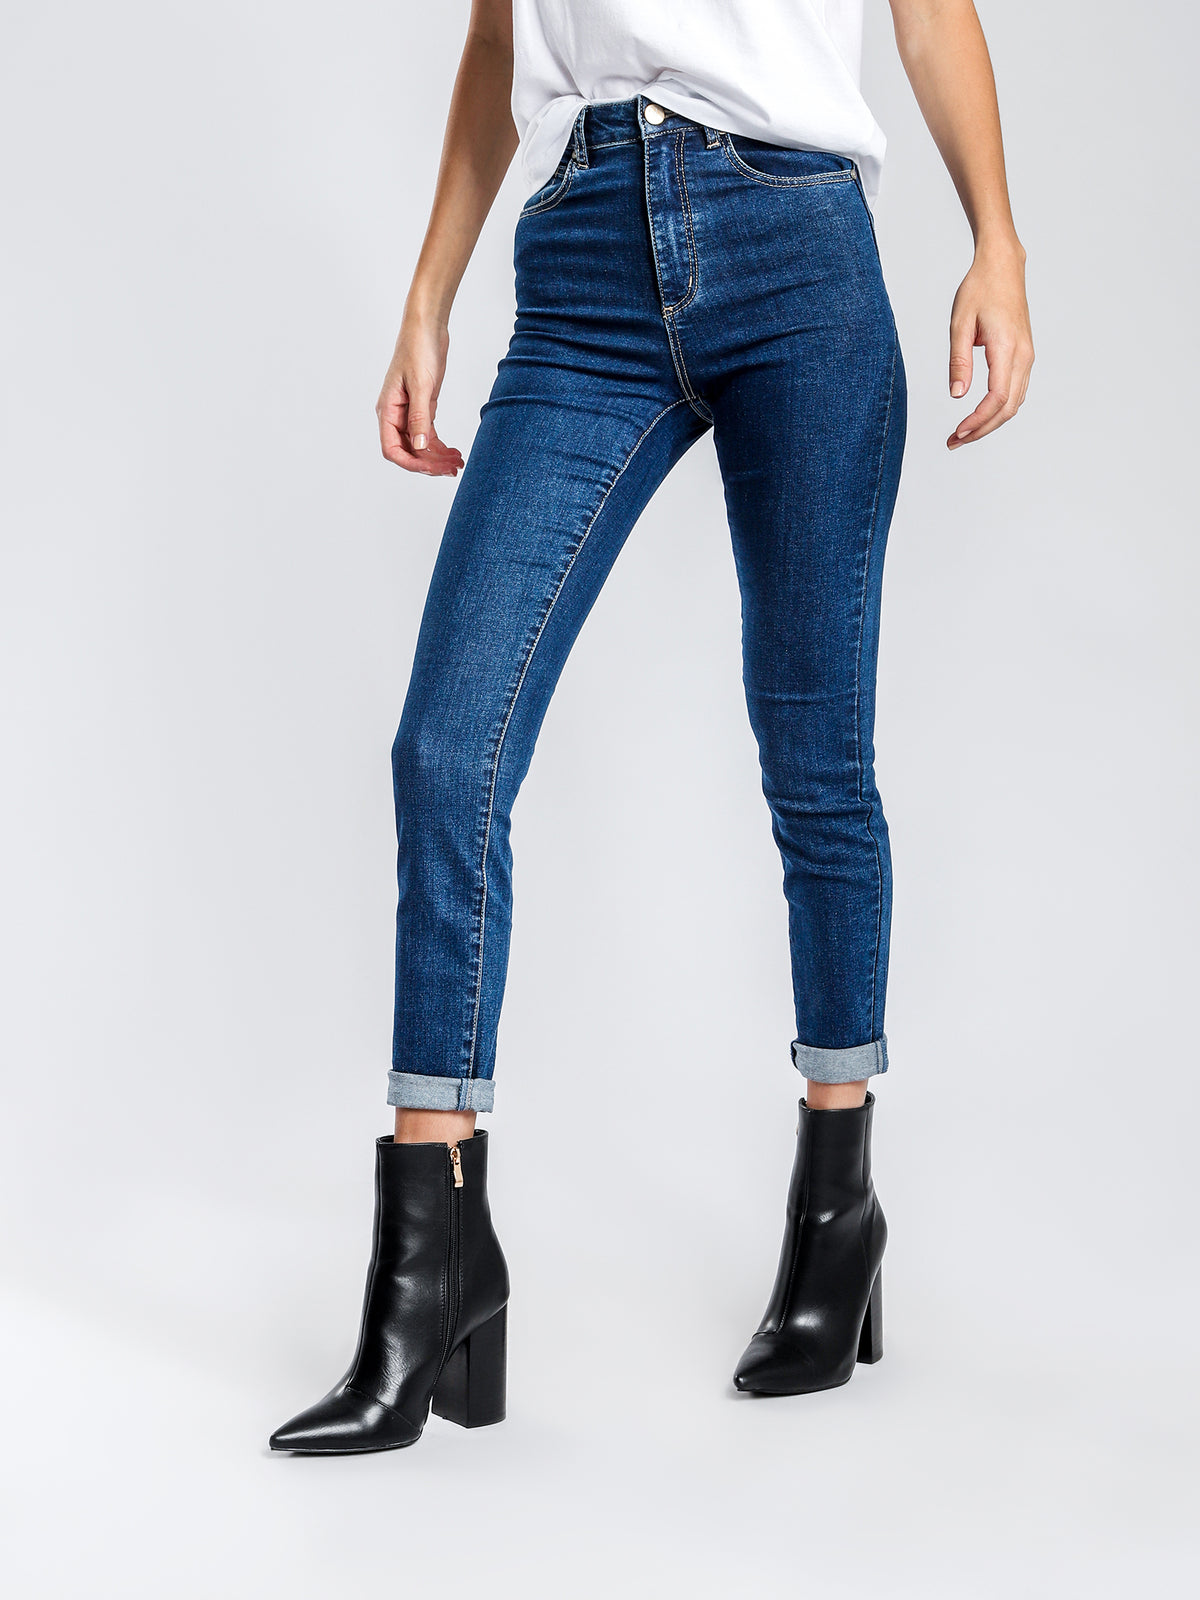 A High Skinny Ankle Basher Jeans in Blue Denim